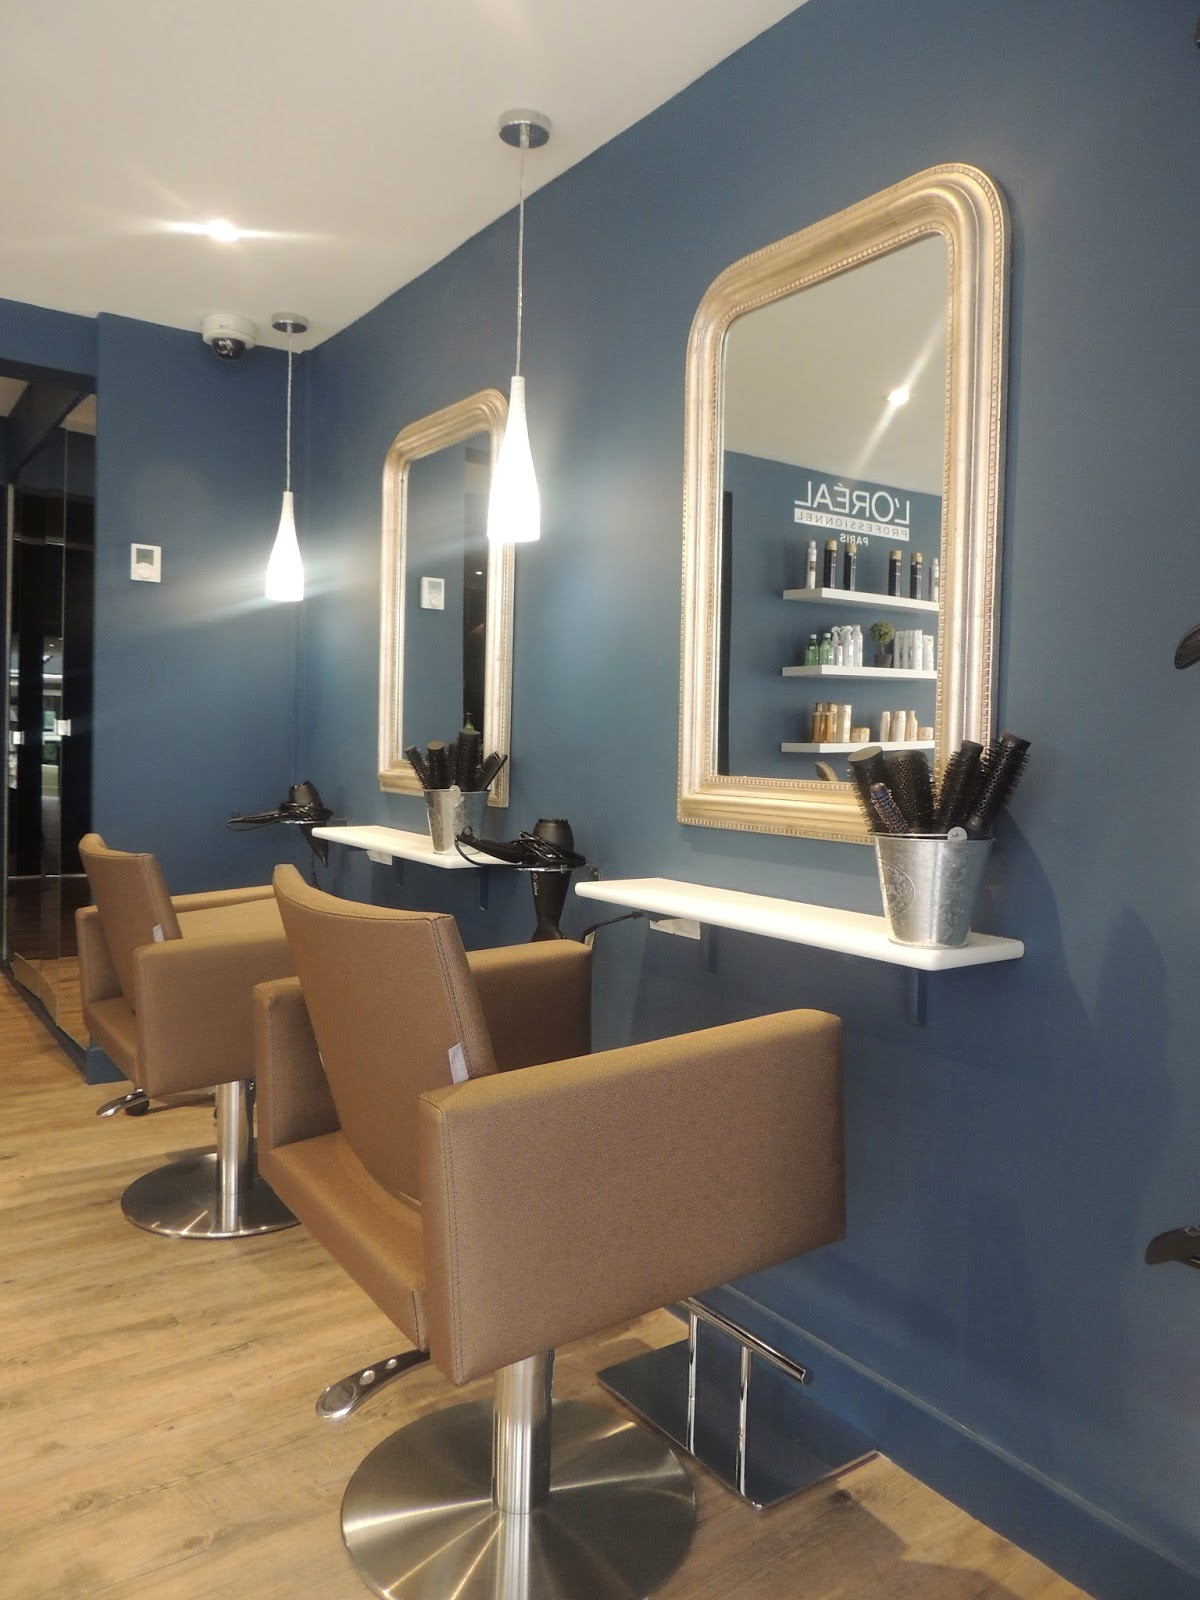 Salon De Coiffure Nanterre Decoration D Interieur Idee Interesting With Decoration D